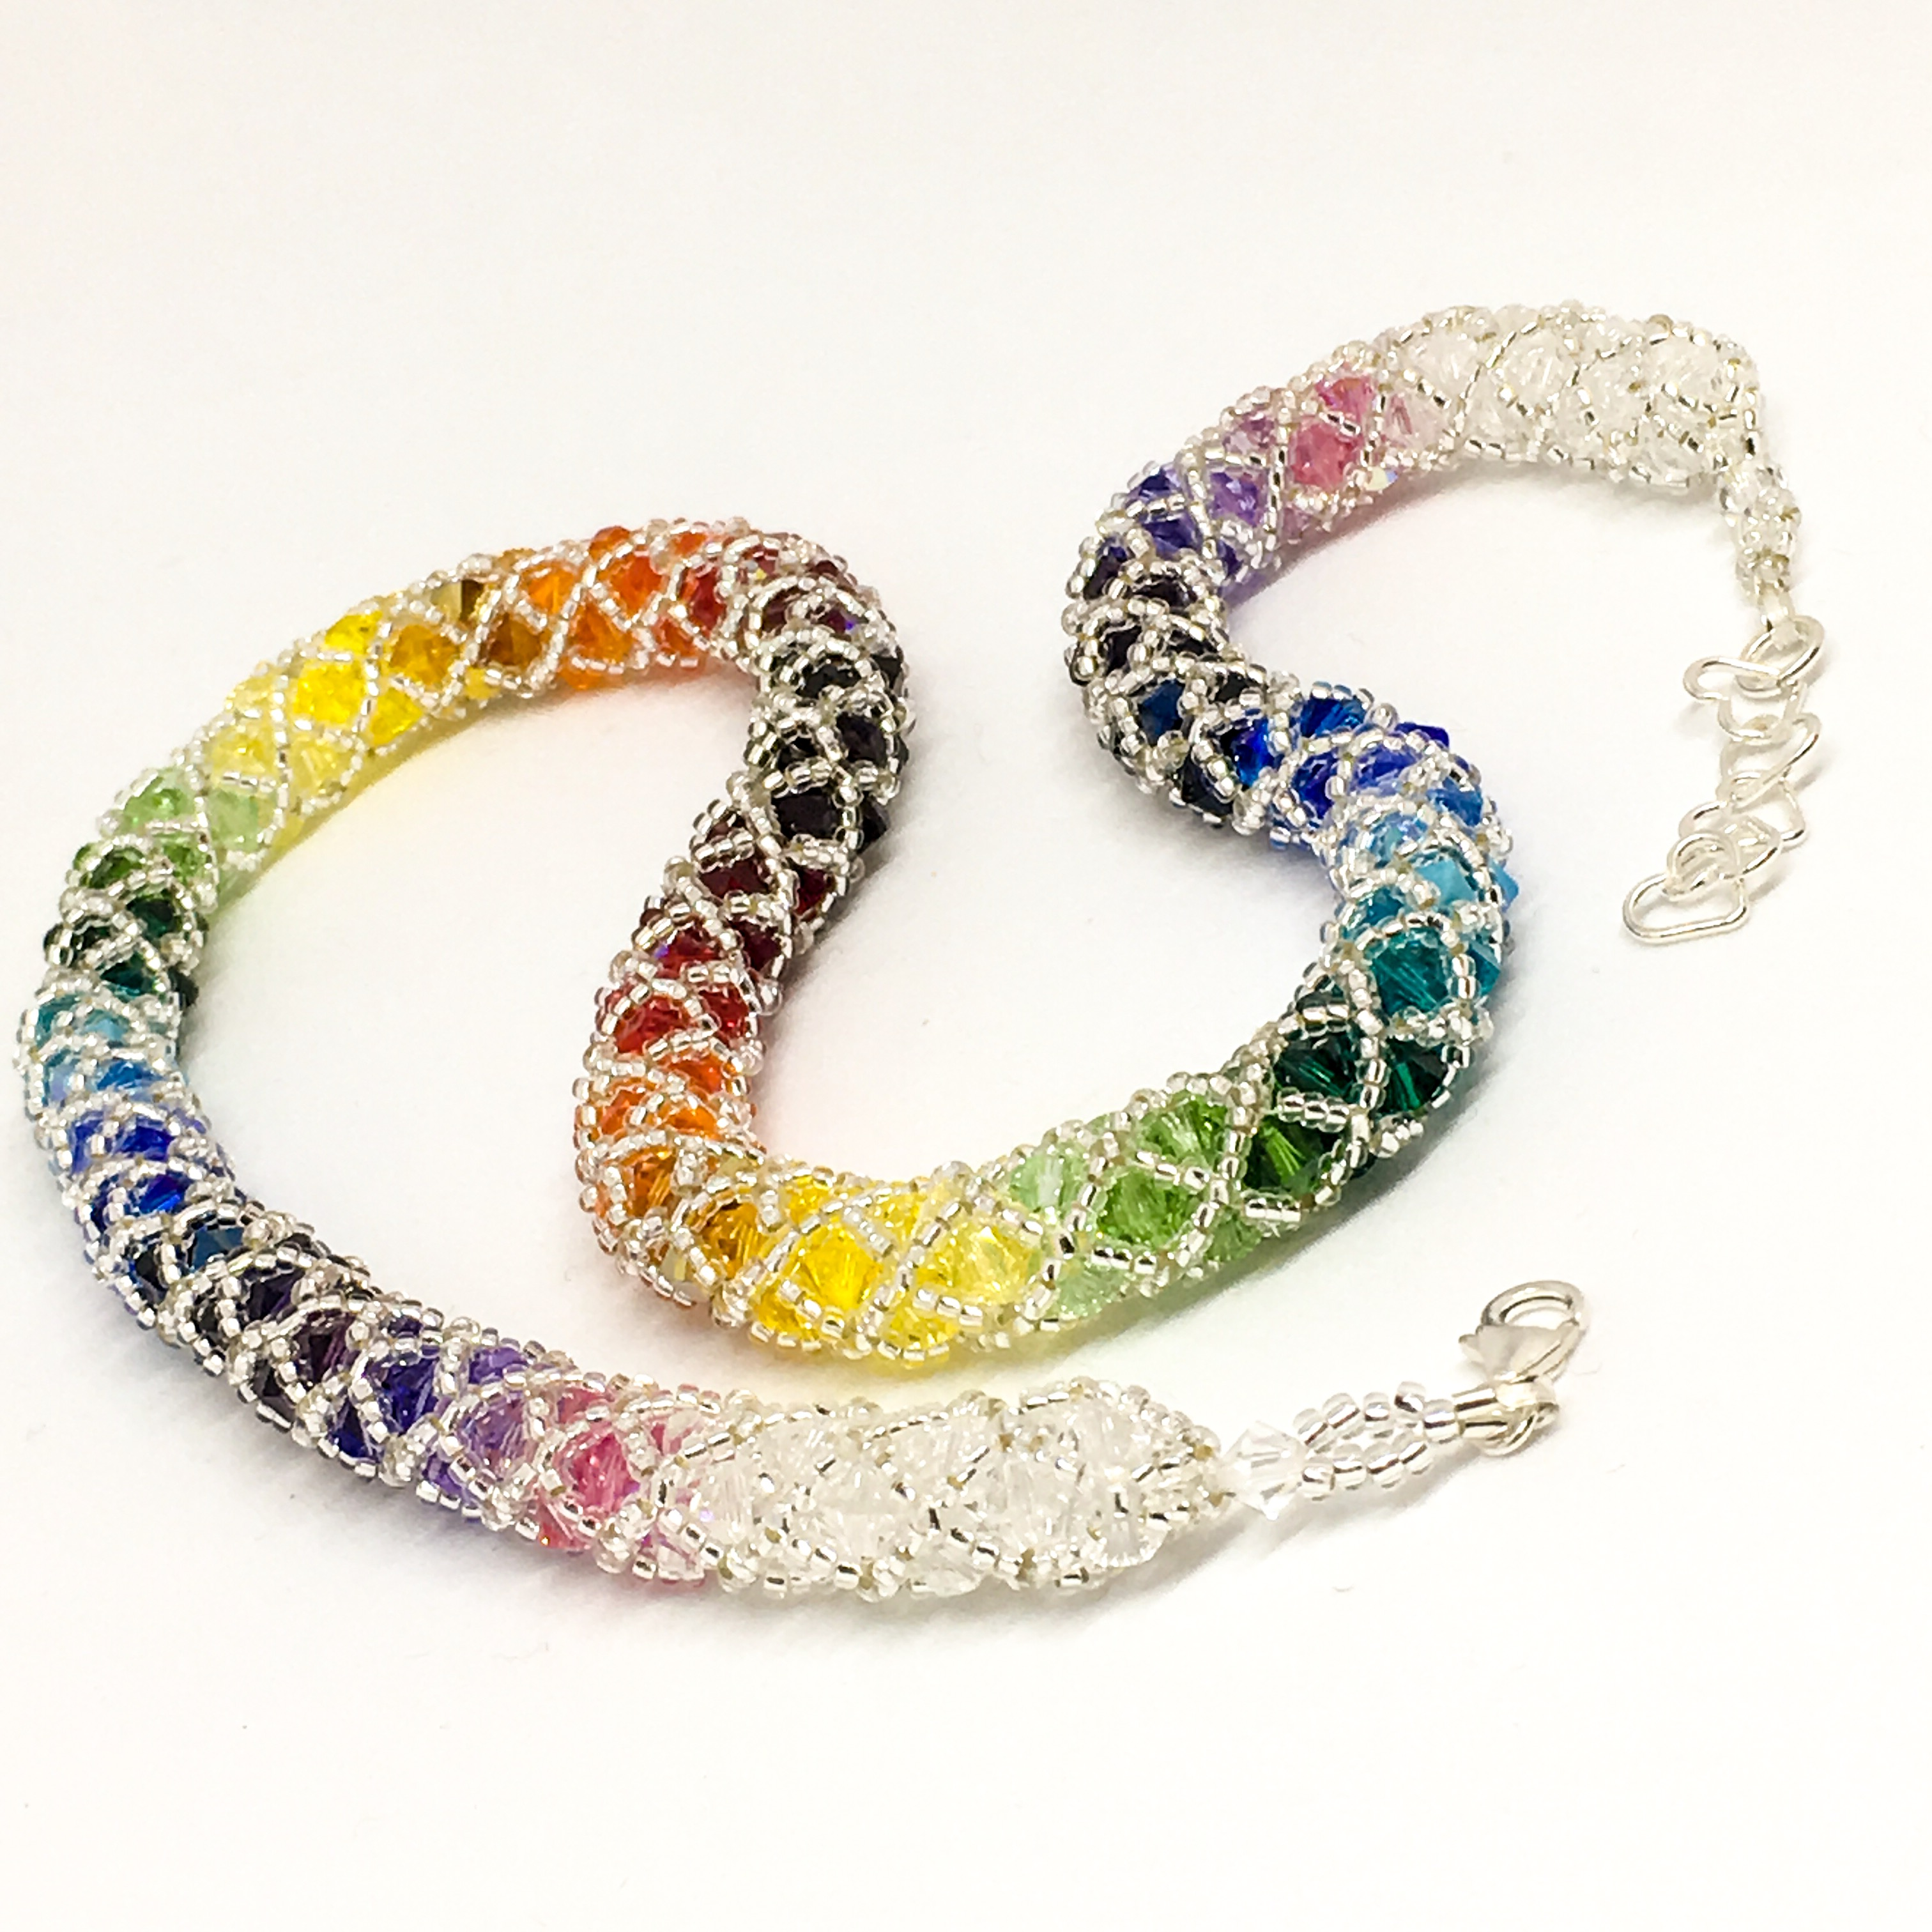 Statement rainbow Swarovski necklace, sterling silver clasp, spiral weave